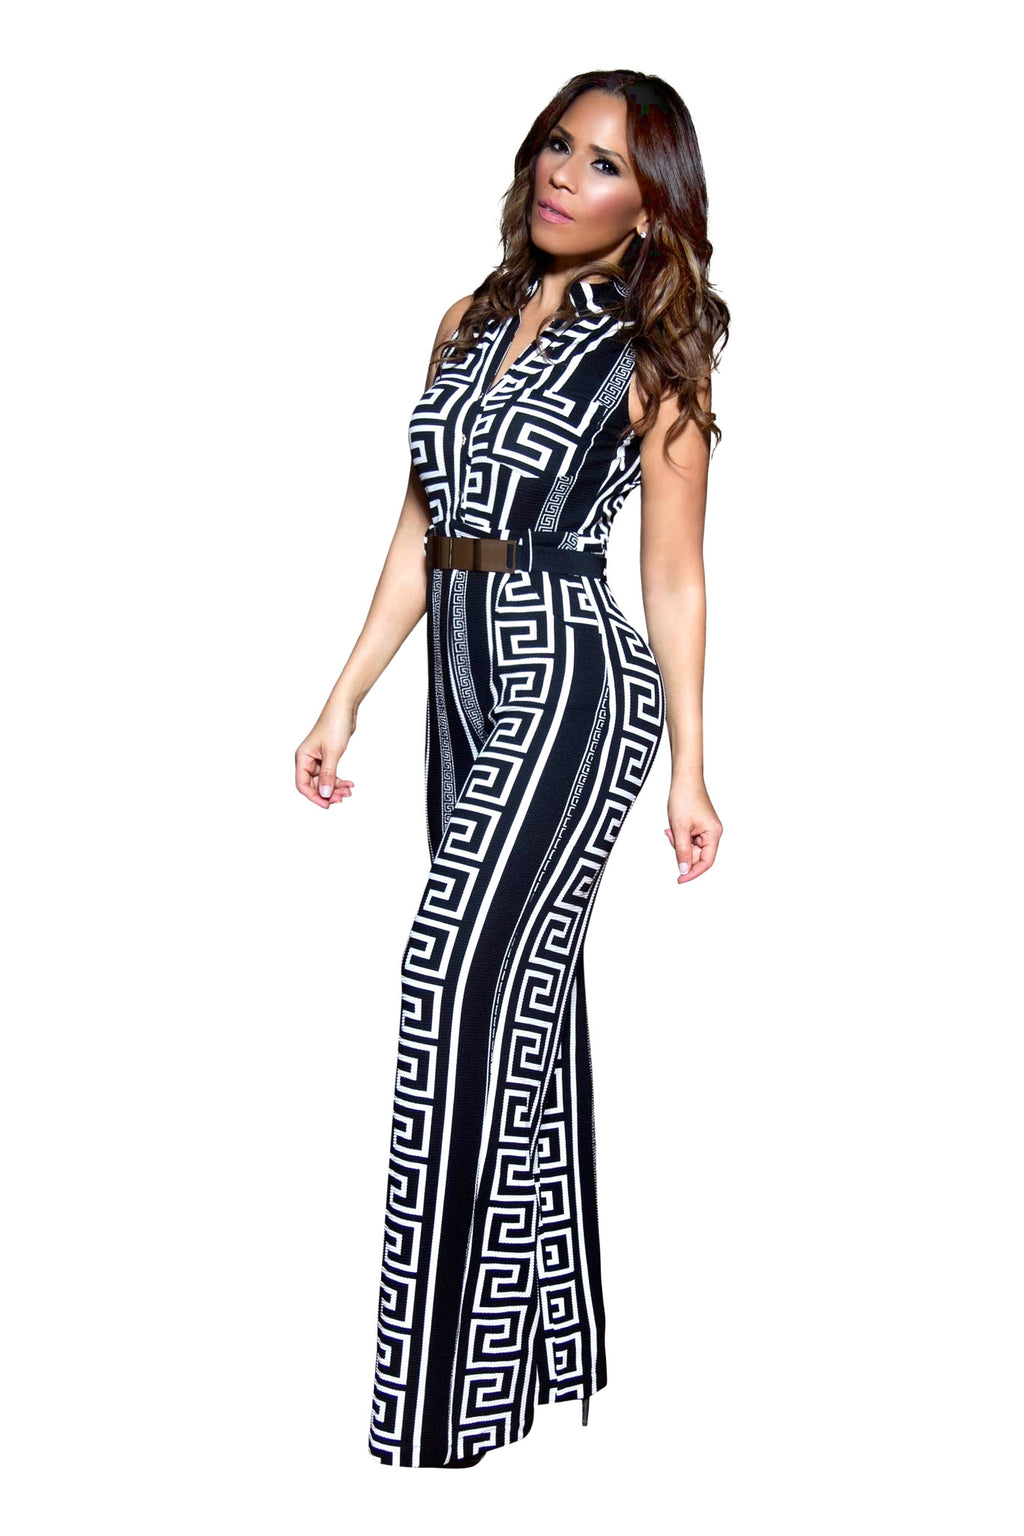 ac230785d66c Classy Geometric Print Black and White Belted Cocktail Jumpsuit- Black - MY  SEXY STYLES